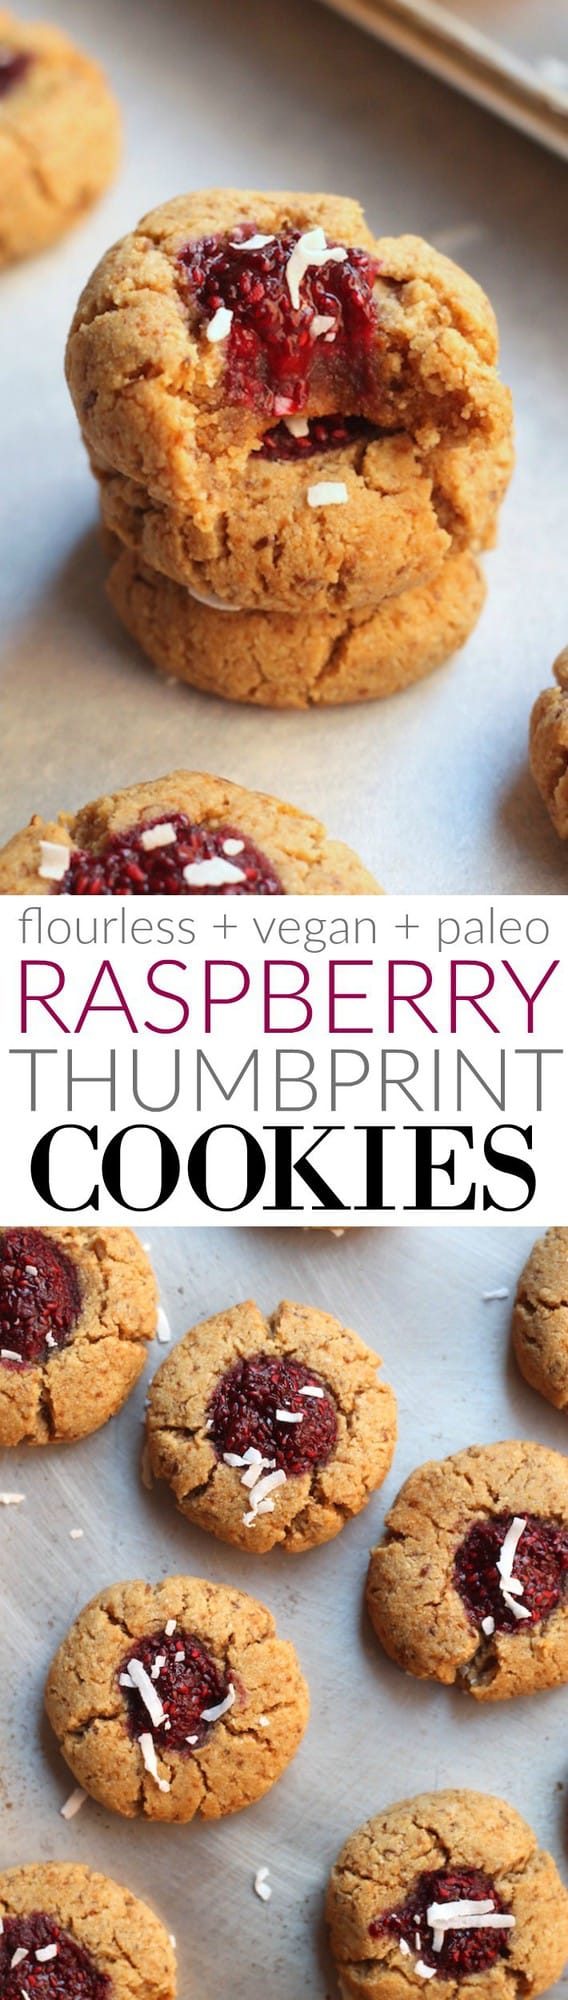 The Flourless Vegan + Paleo Raspberry Thumbprint Cookies are soft are a soft, perfectly sweet snack or treat! Super quick to whip up.